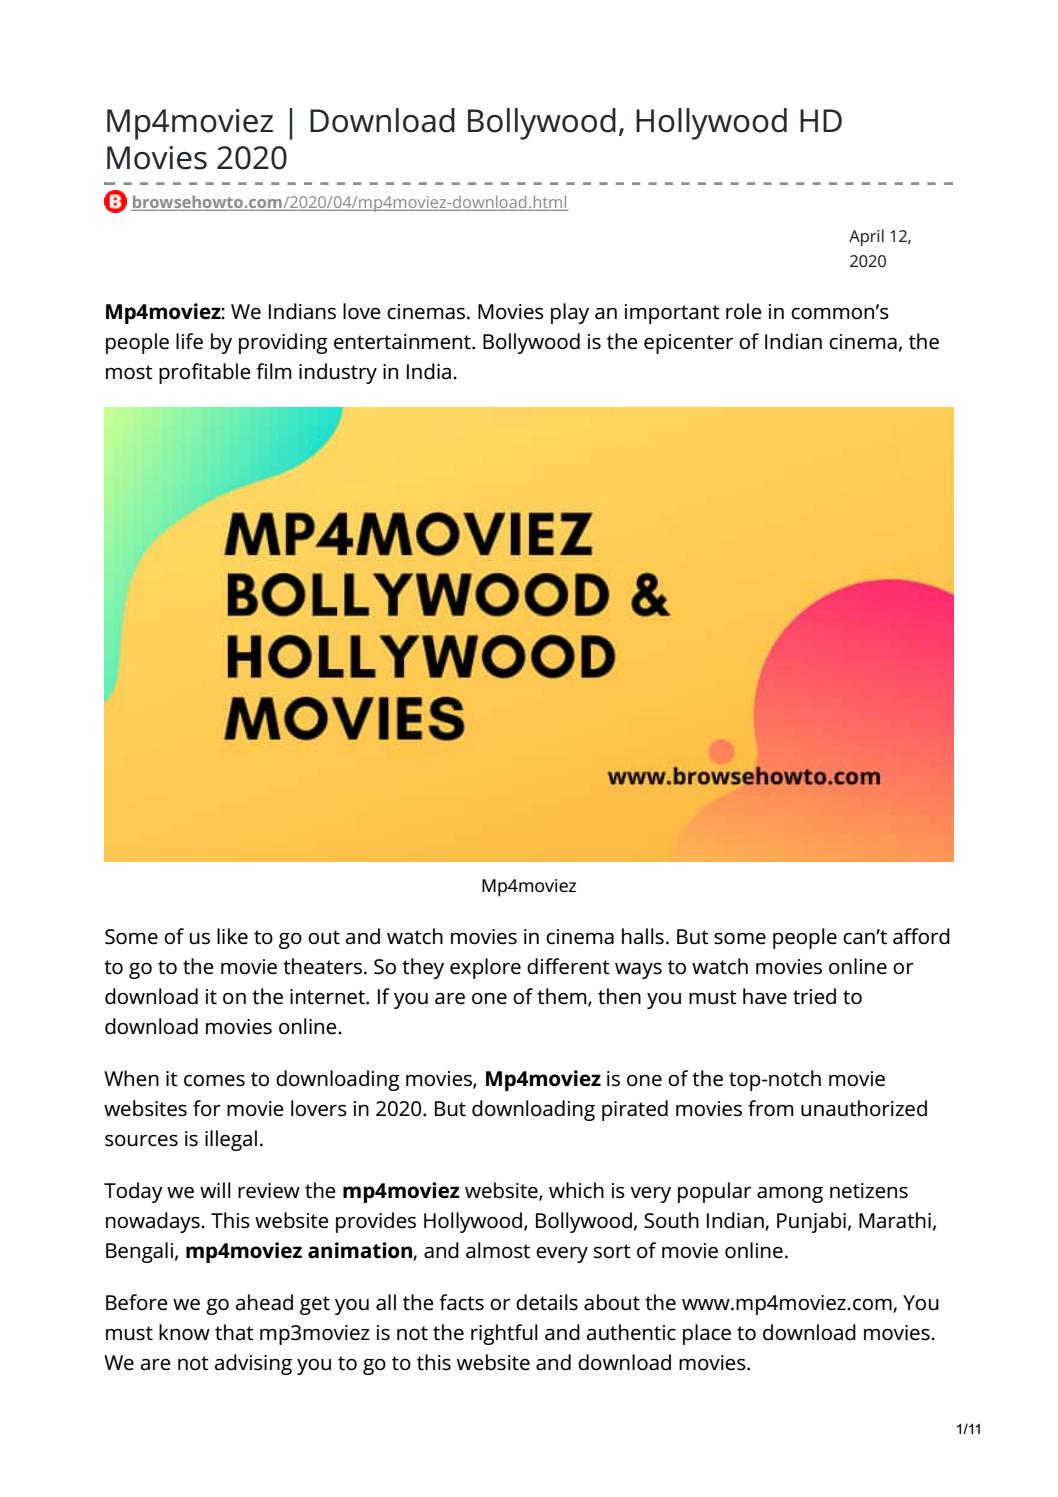 Mp4moviez | Download Bollywood, Hollywood HD Movies 2020 by Raja Kashyap -  issuu